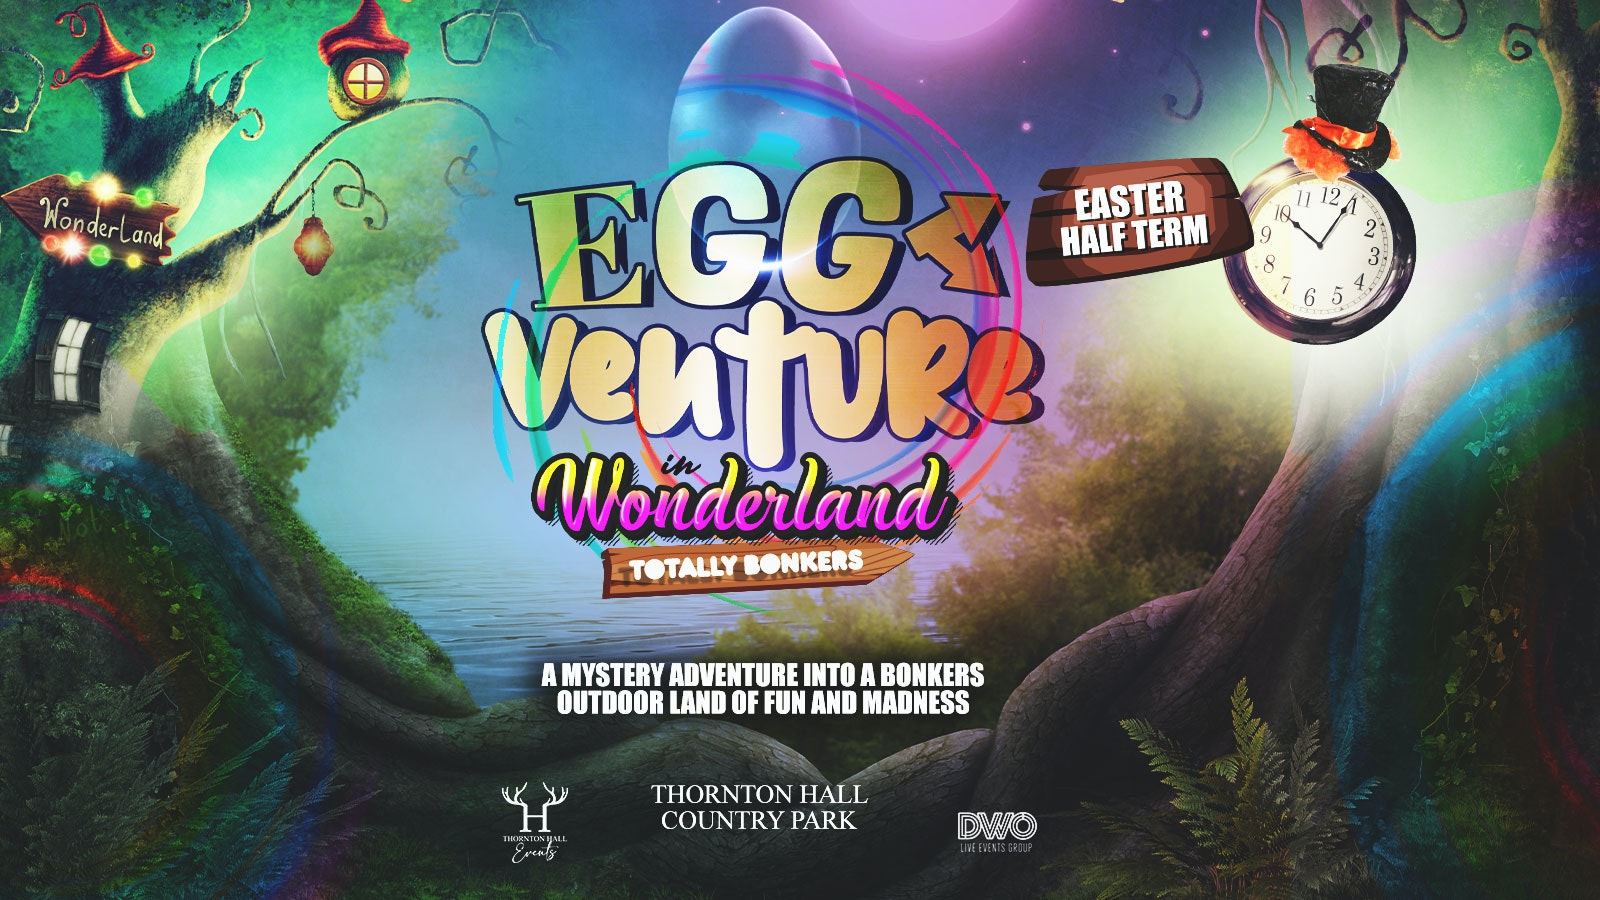 EggVenture in Wonderland –  Thursday 8th April – 2.30pm